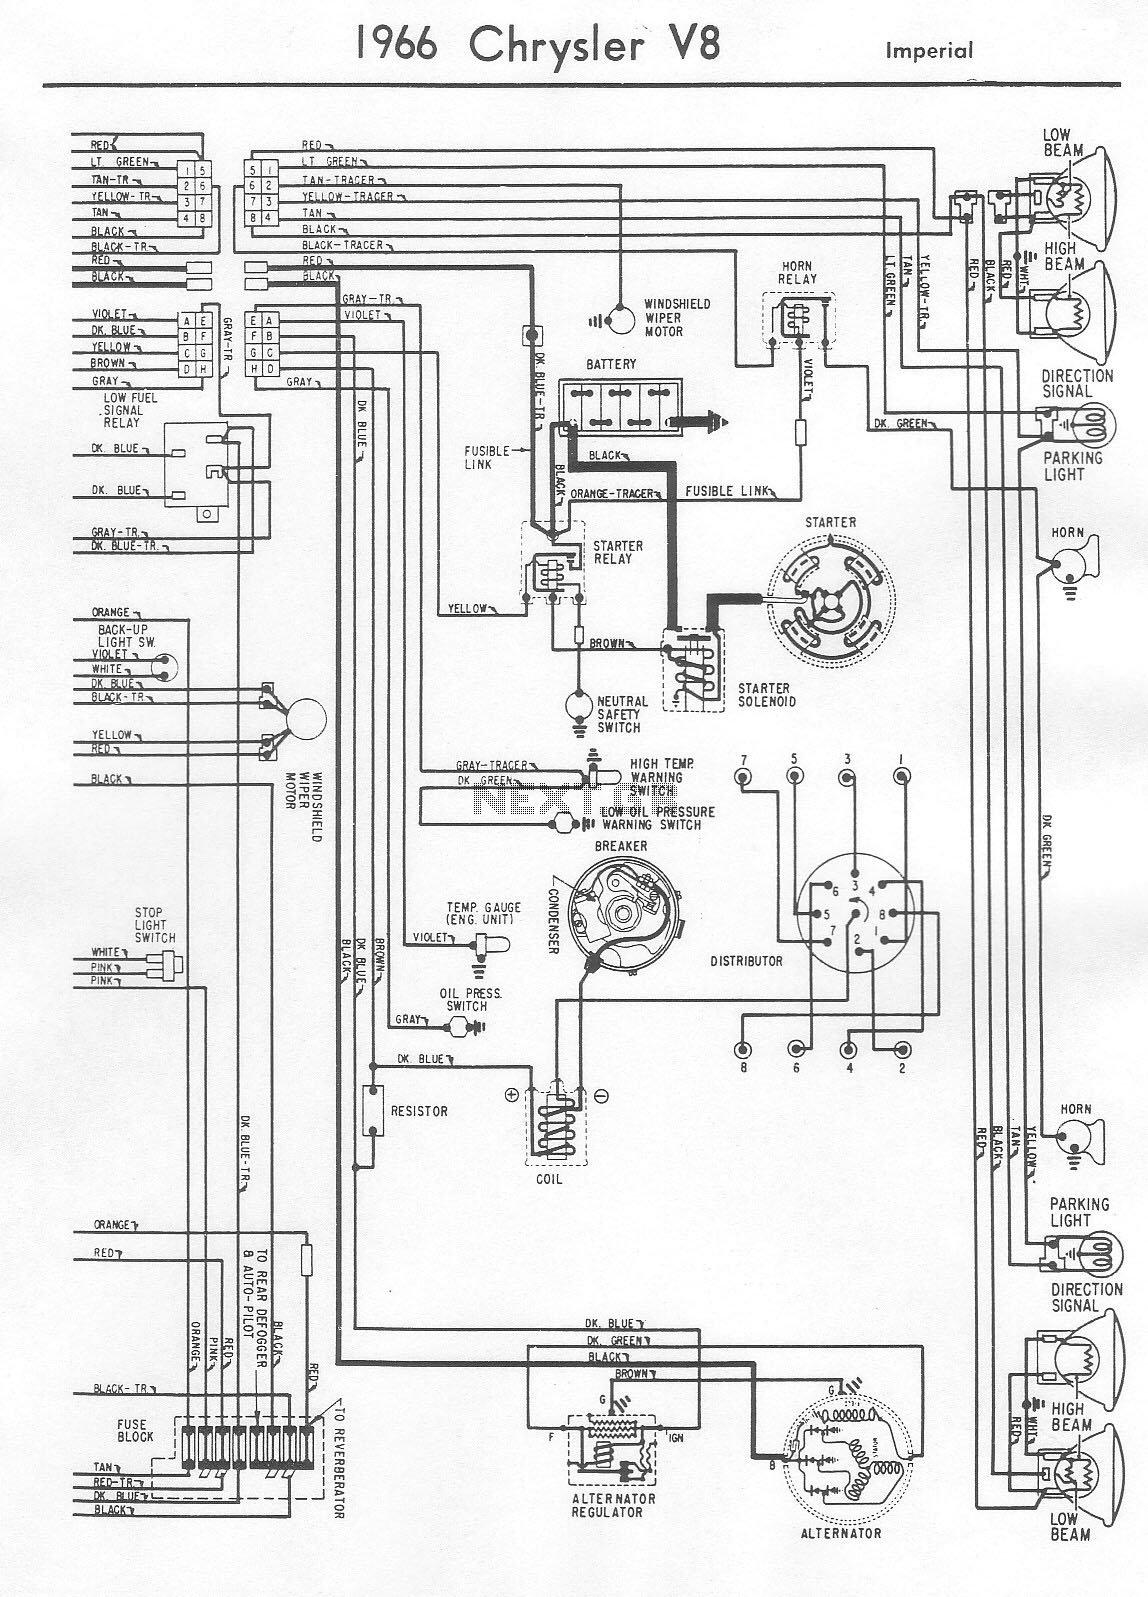 1964 Chrysler 300 Wiring Diagram on ford brake light wiring diagram